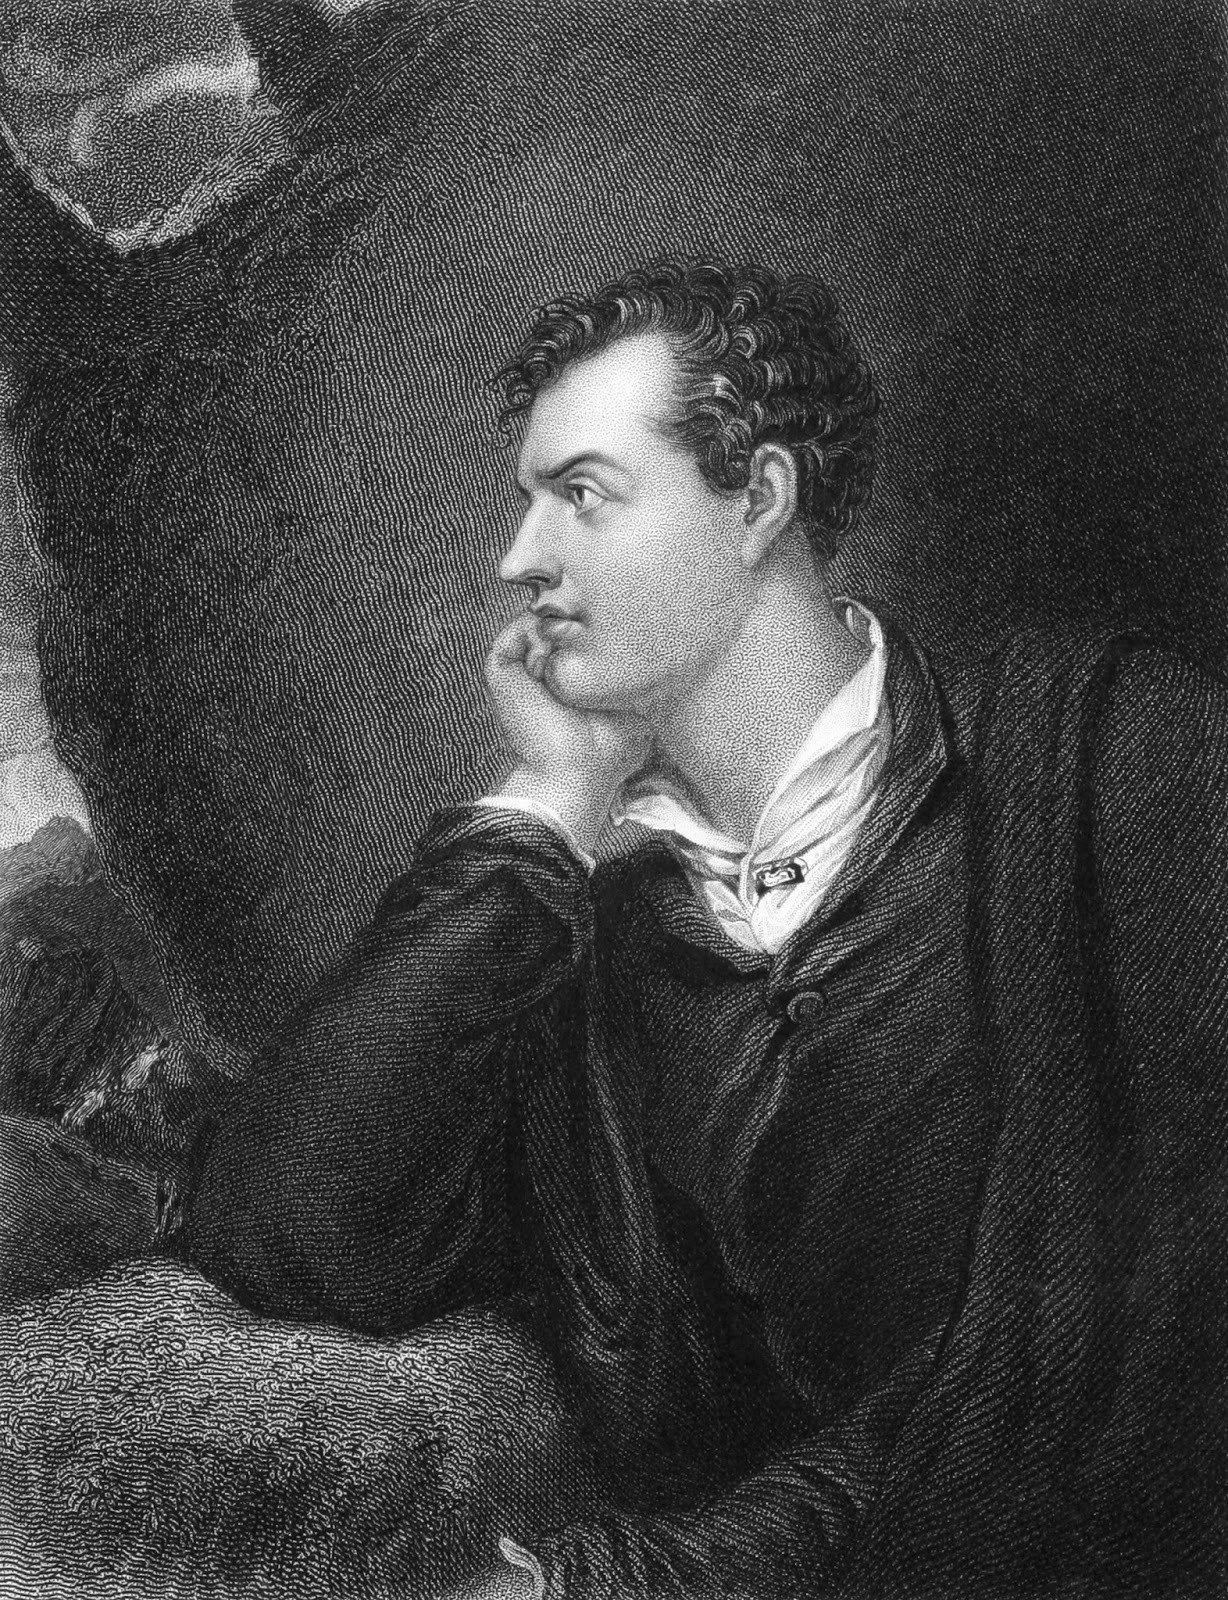 Lord Byron: Like Mother, Like Son